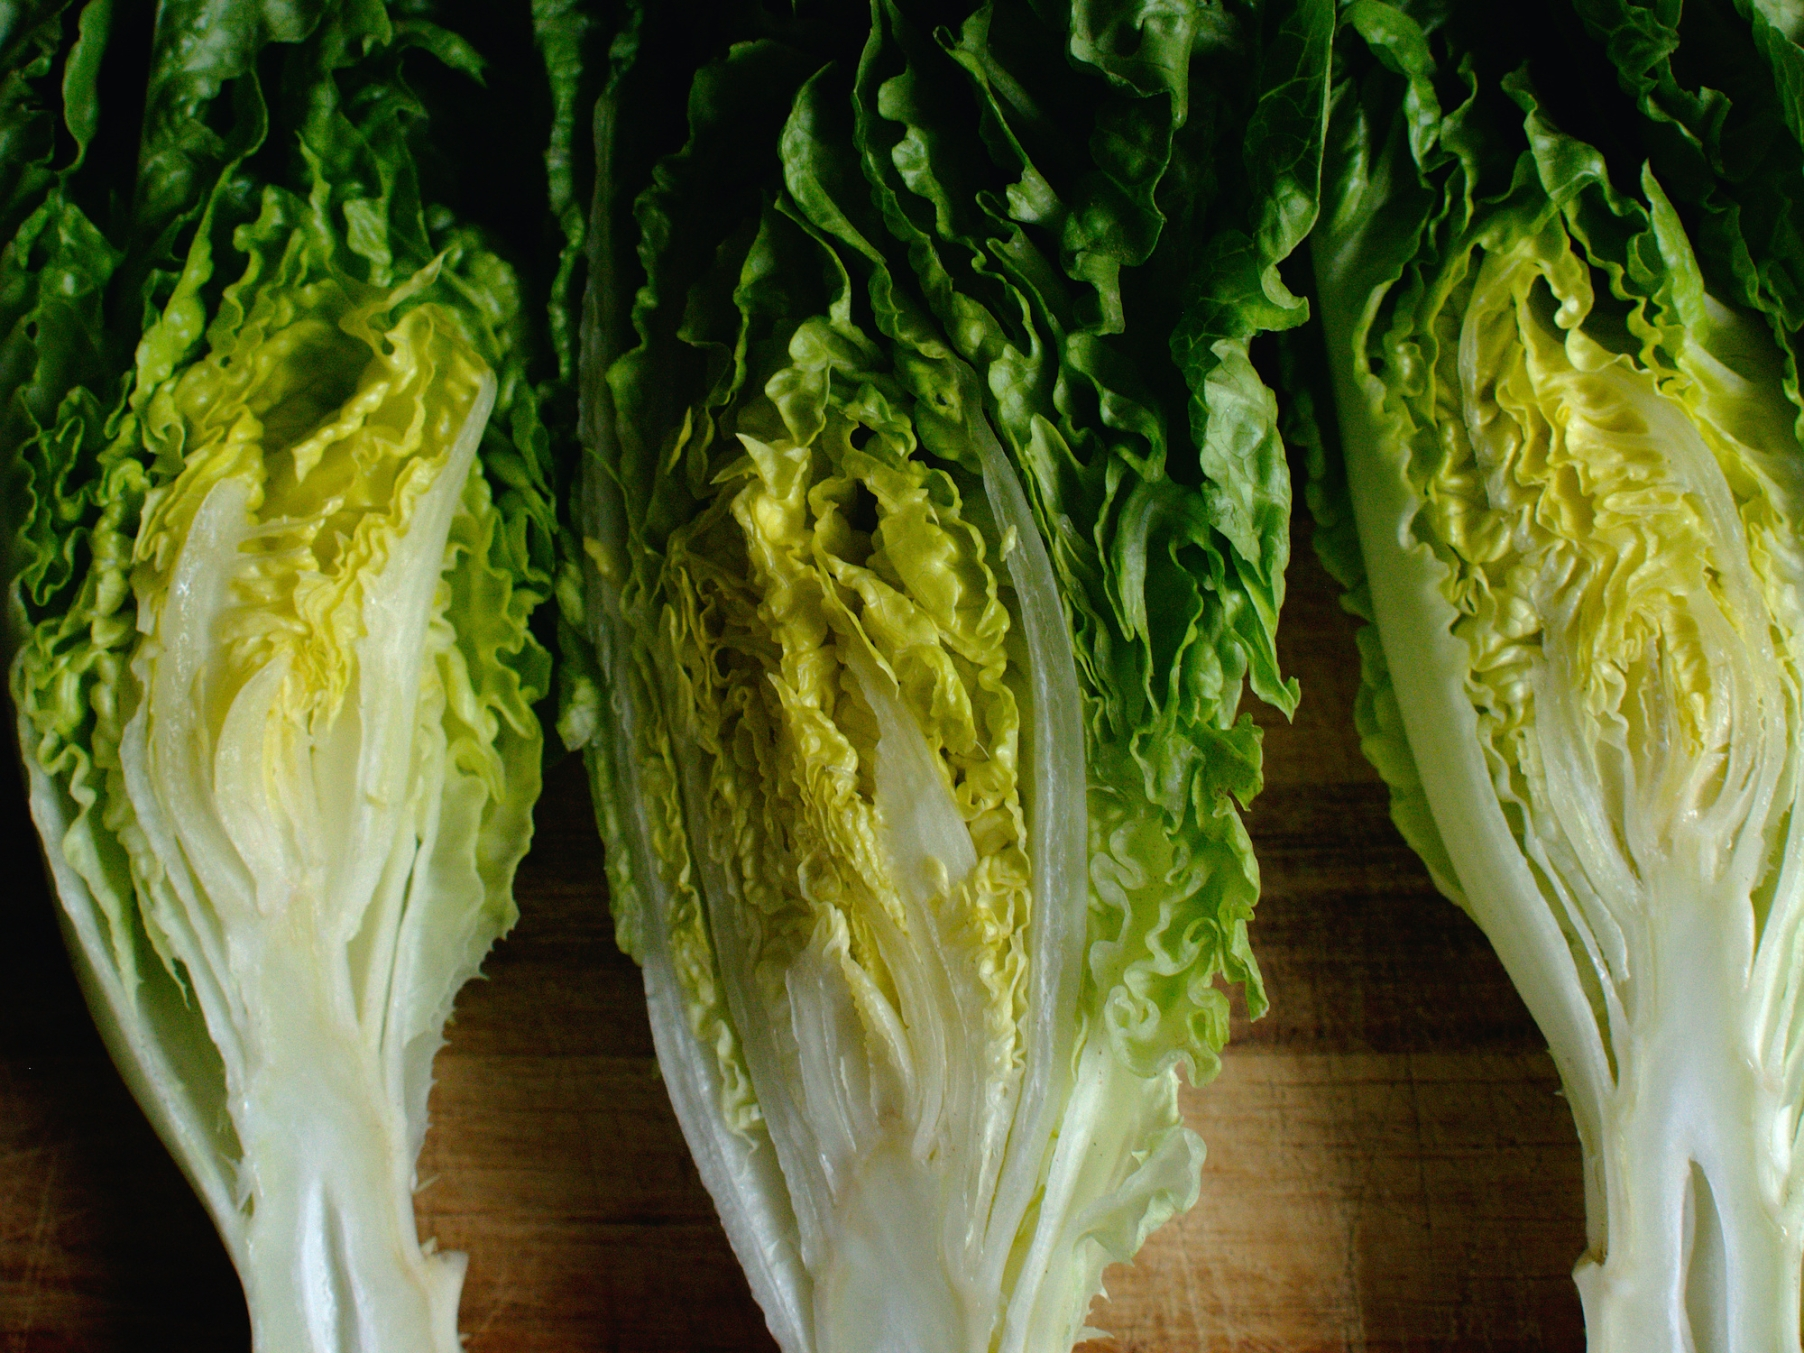 Close up of lettuce halves on a wooden chopping board